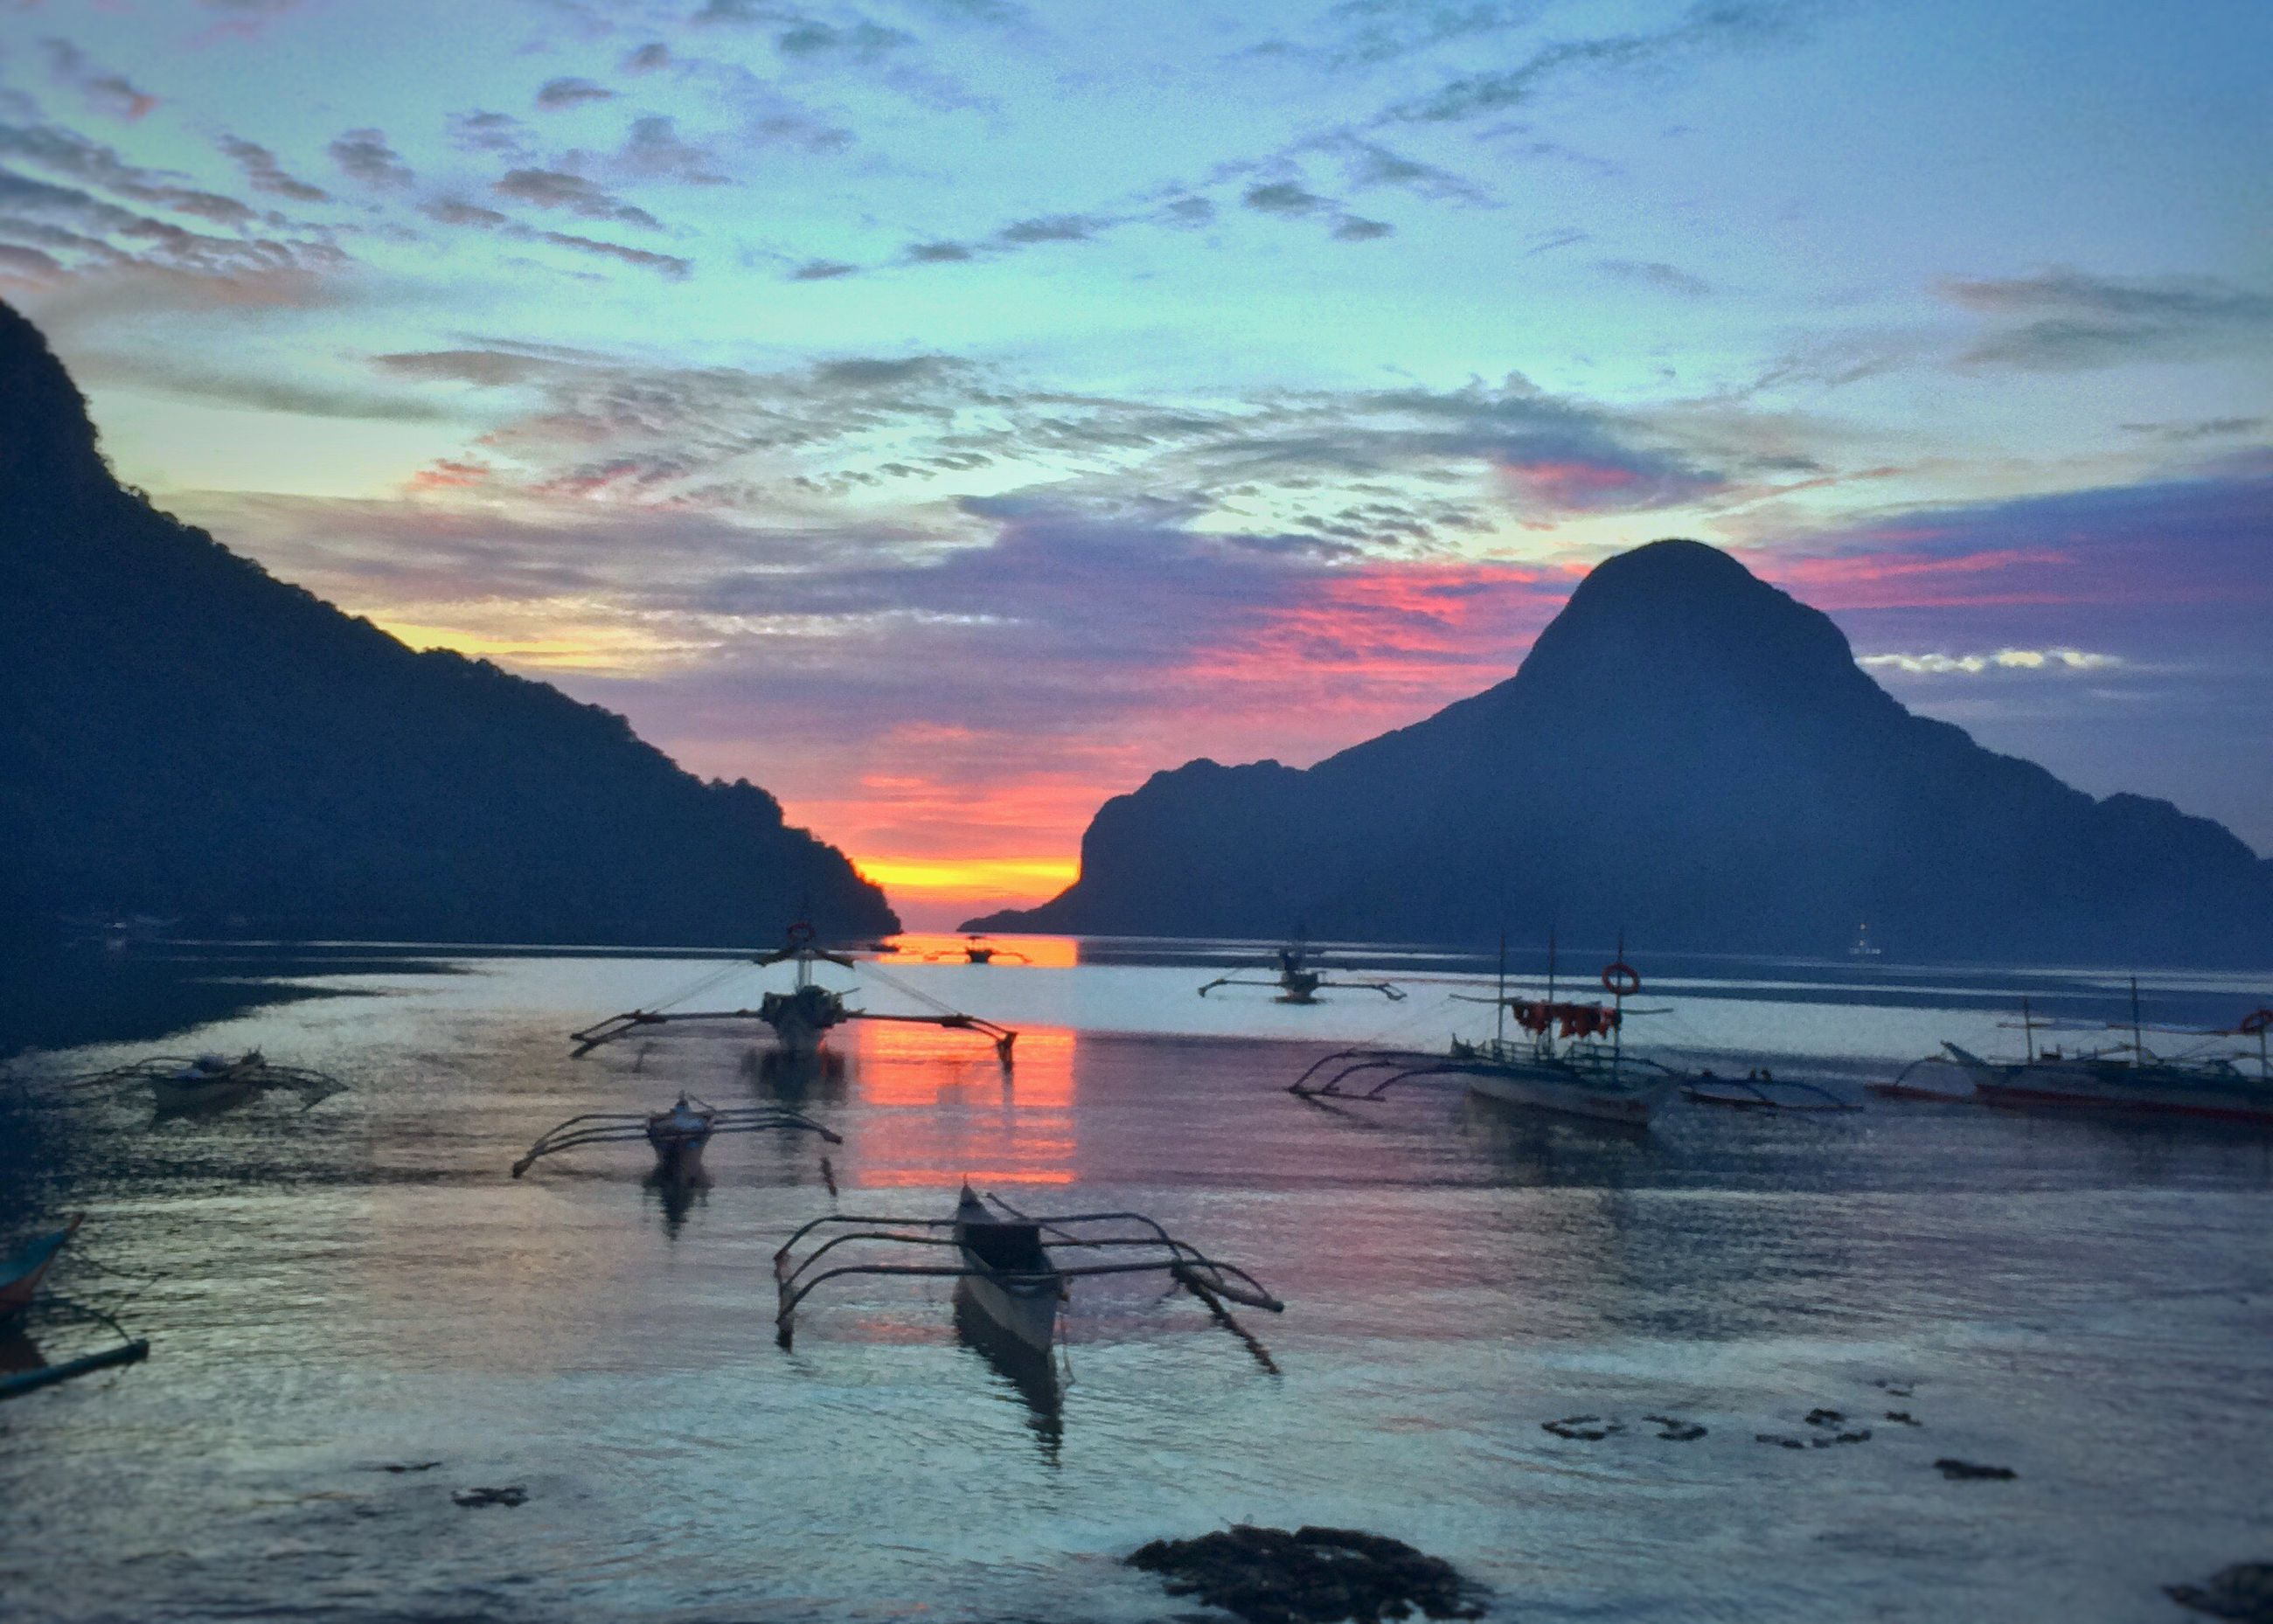 water, mountain, sunset, nautical vessel, scenics, sky, tranquility, tranquil scene, beauty in nature, boat, mountain range, nature, mode of transport, cloud - sky, idyllic, cloud, non-urban scene, outdoors, orange color, remote, calm, majestic, no people, tourism, sailboat, travel destinations, rippled, cloudy